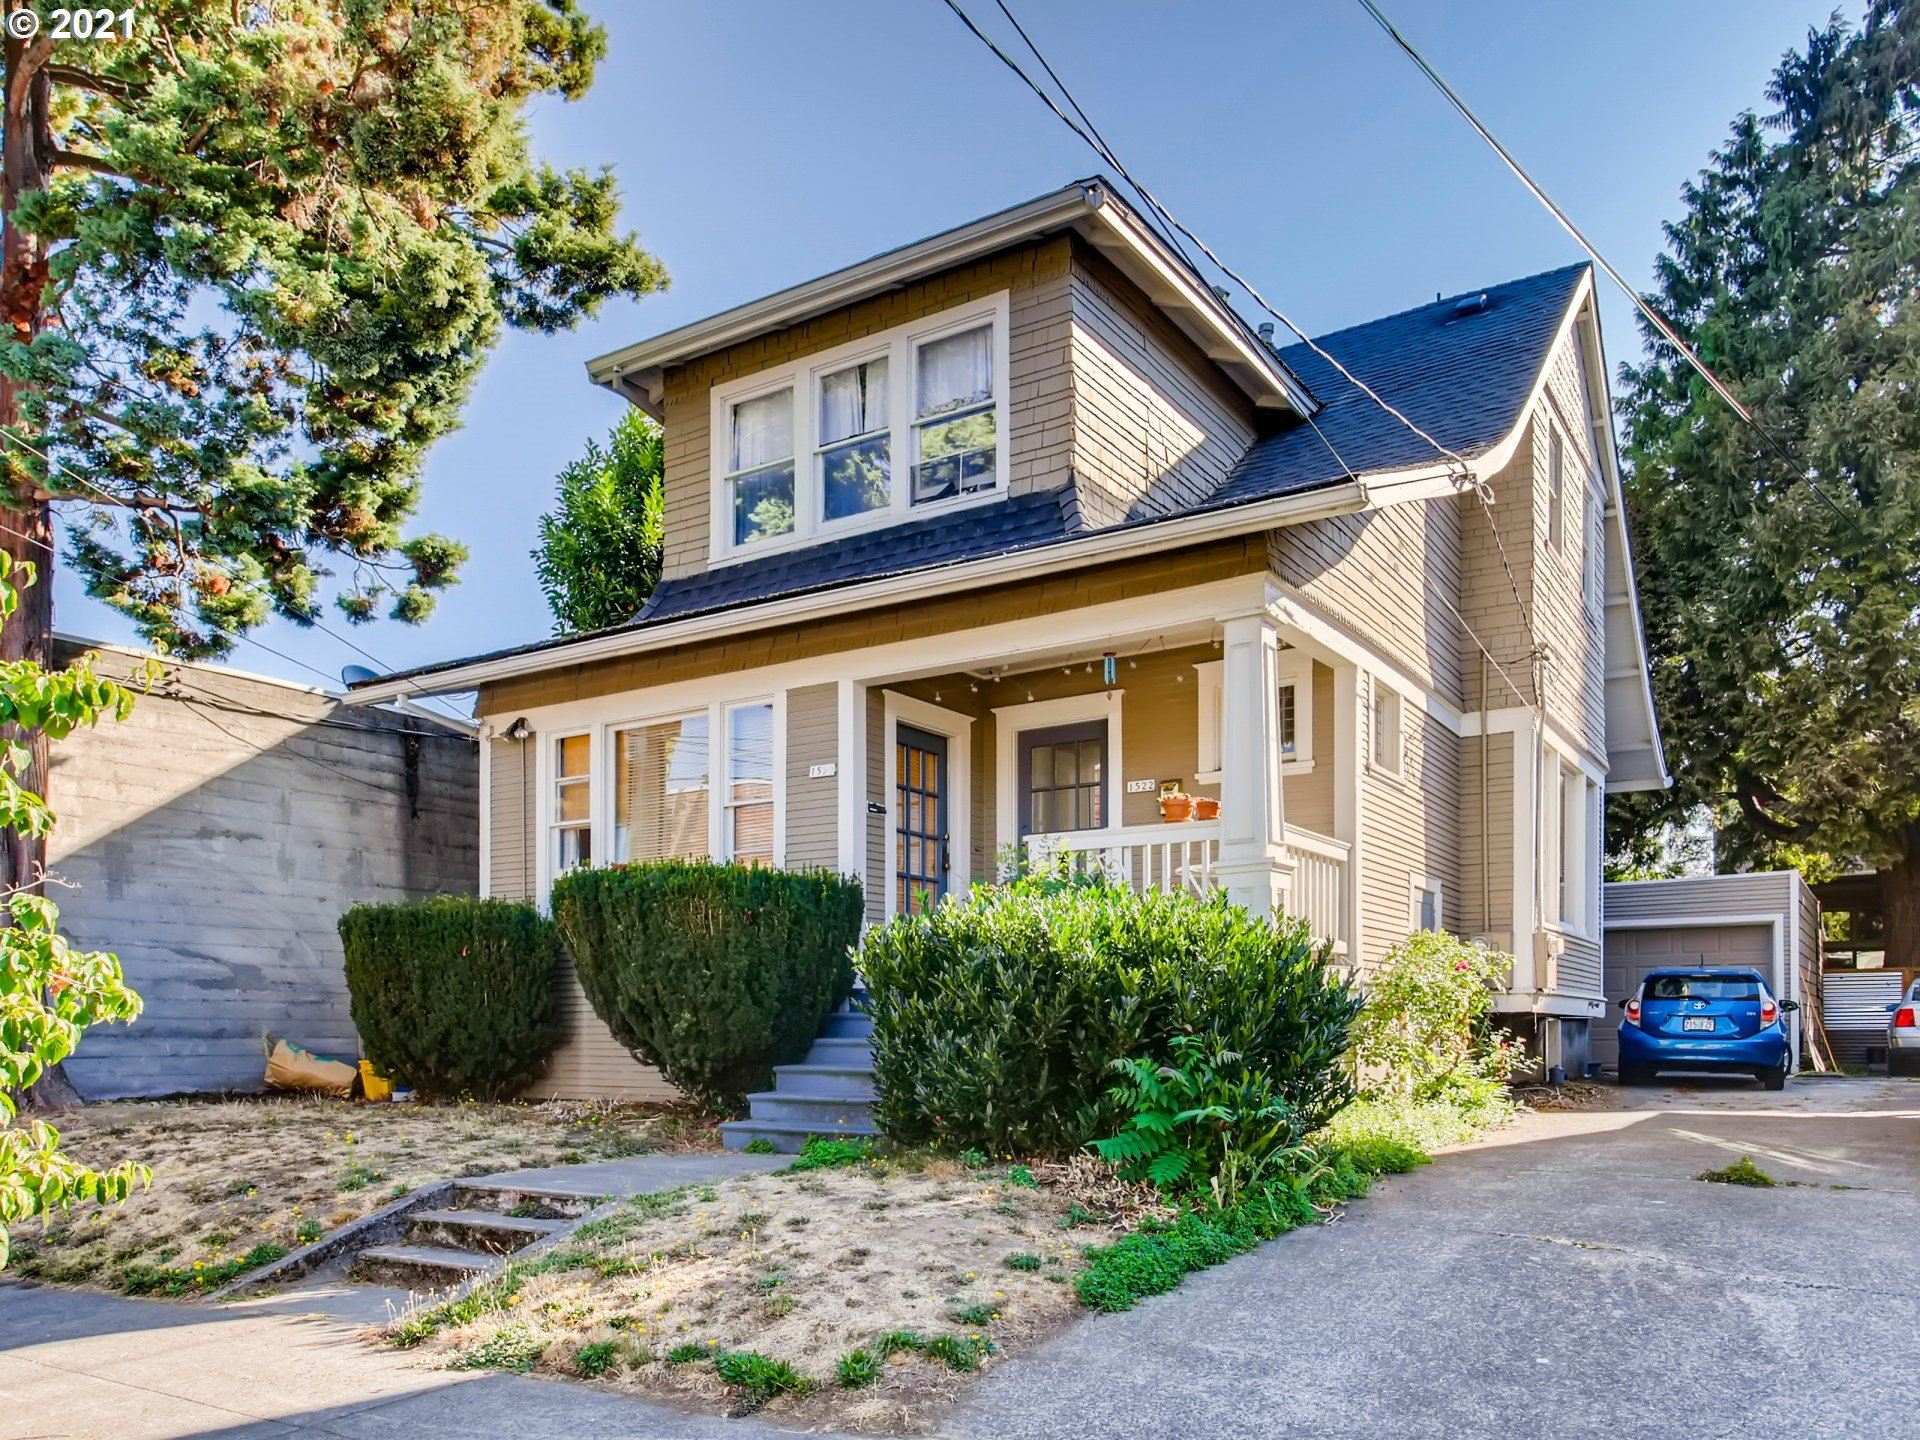 1520 SE 35TH AVE, Portland, OR 97214 - MLS#: 21163349